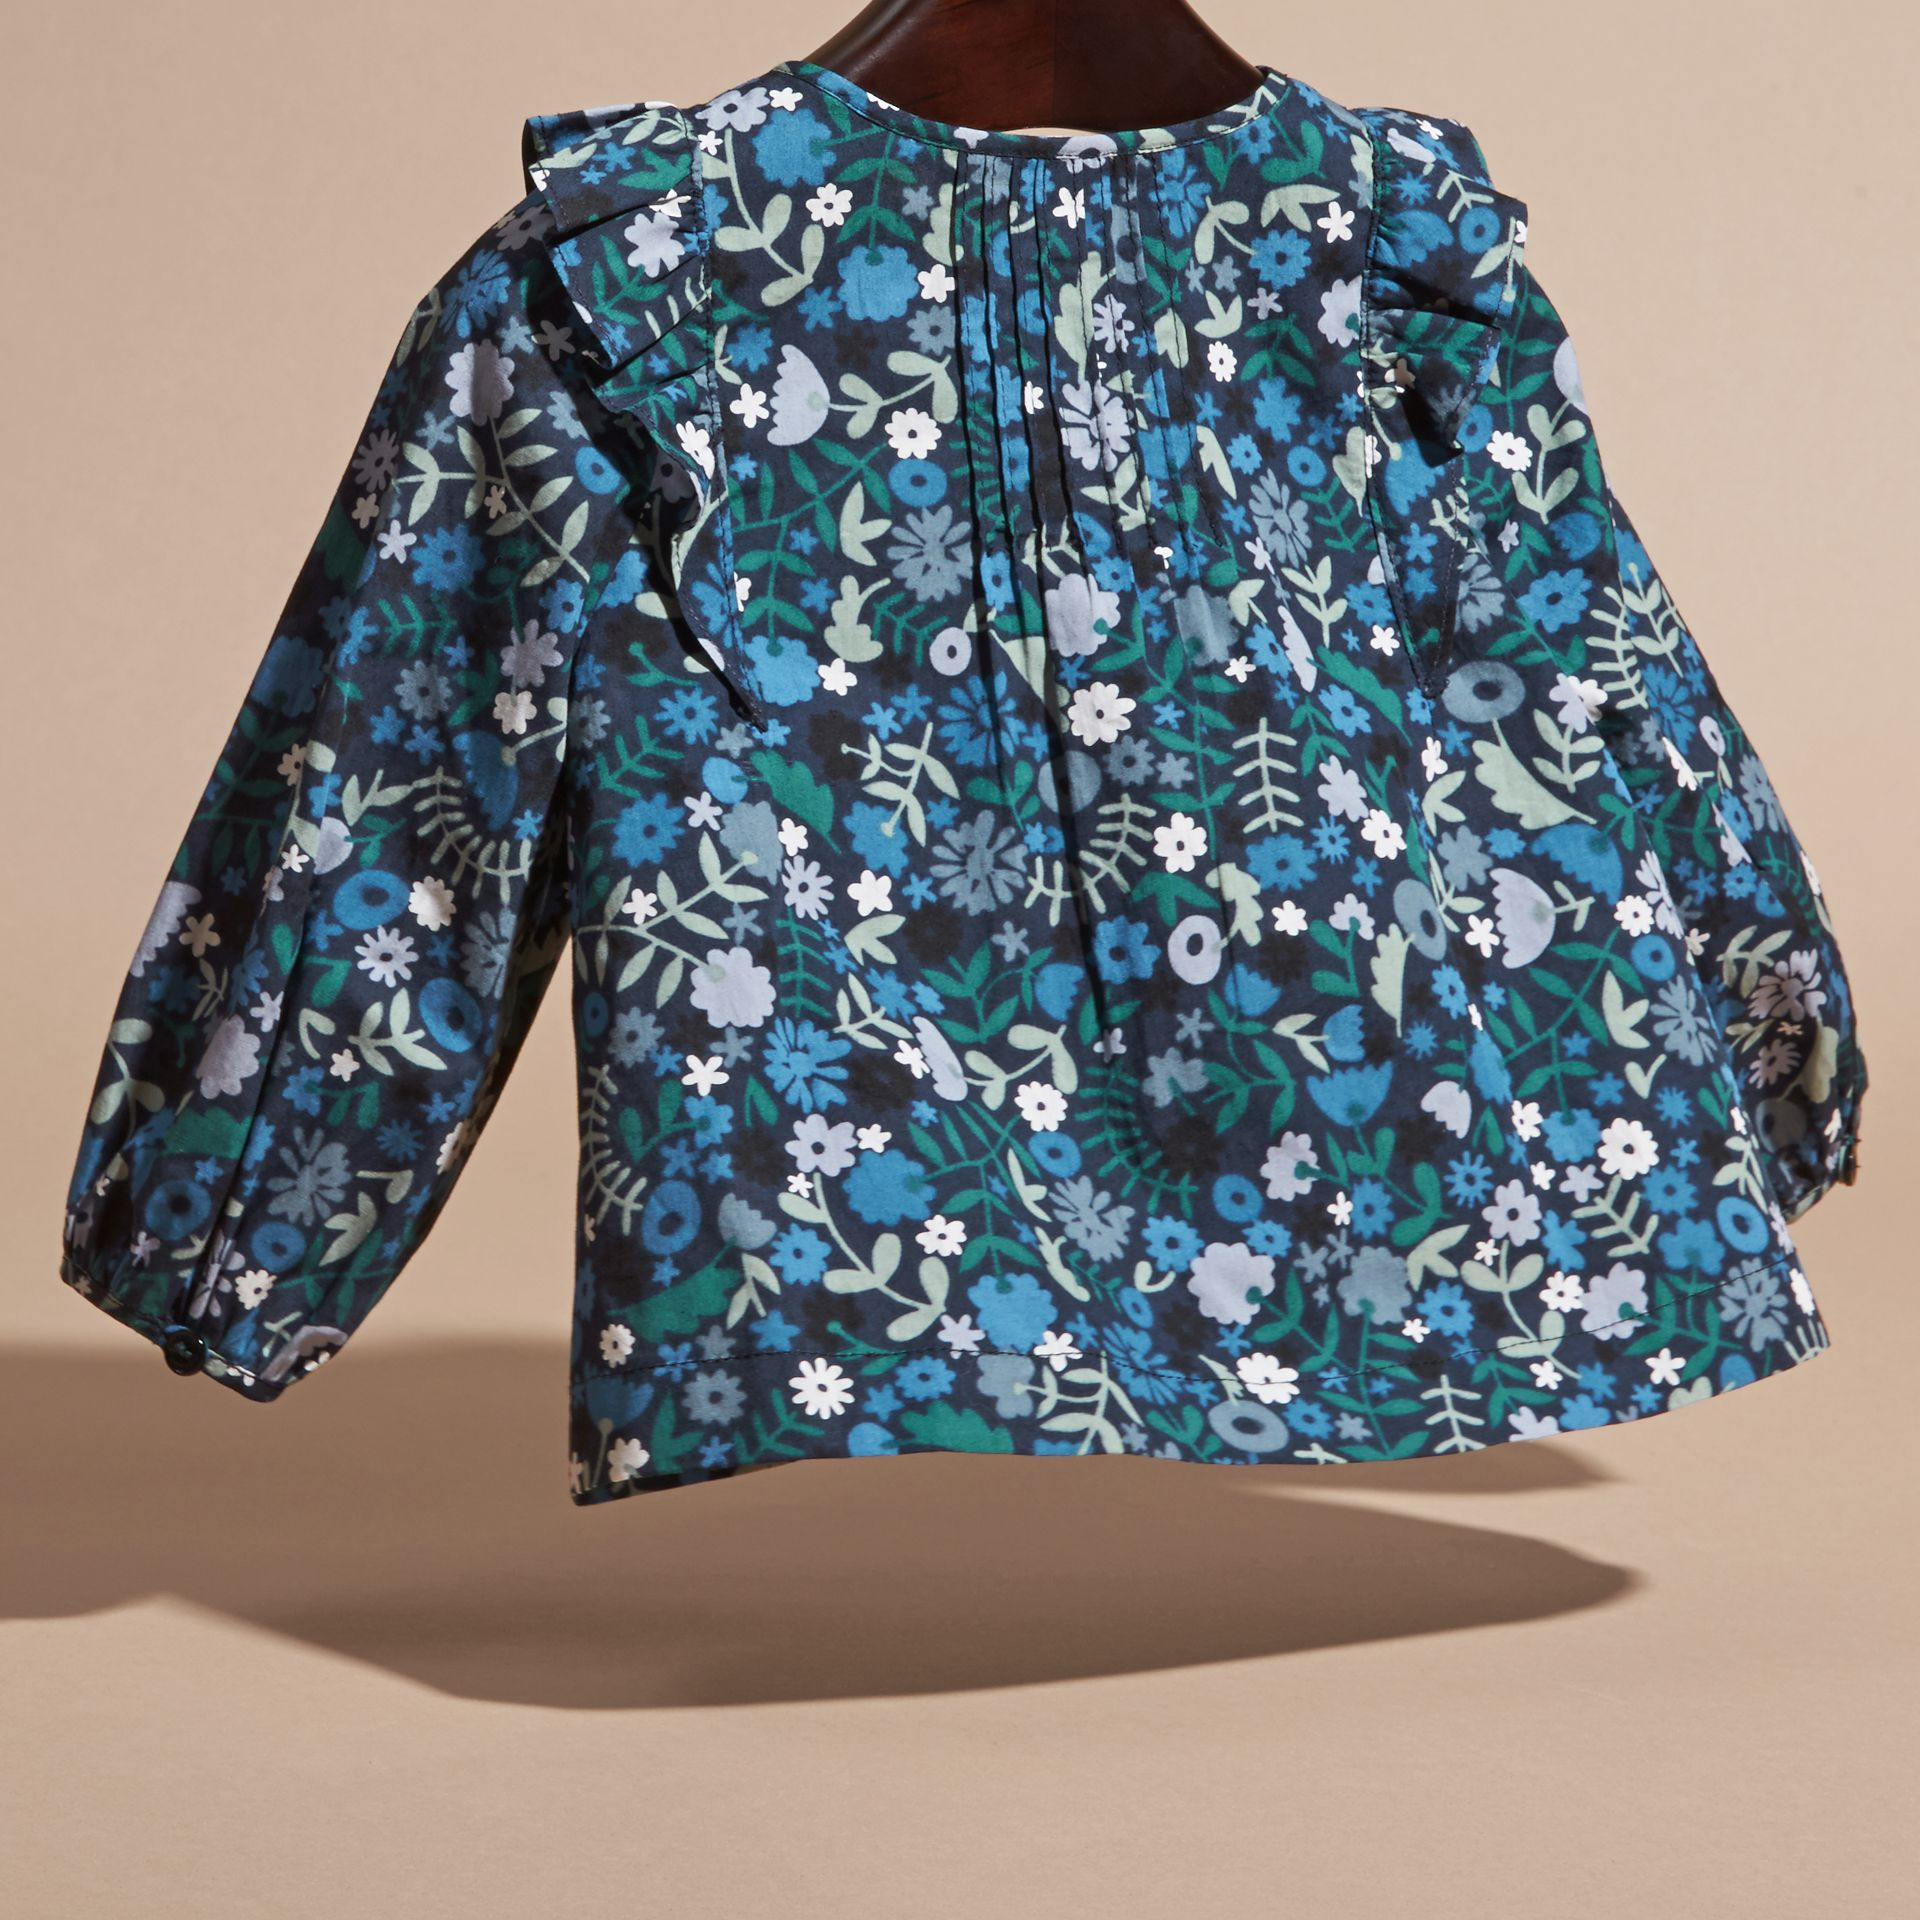 Hydrangea blue Floral Print Cotton Shirt with Ruffle Detail - gallery image 4